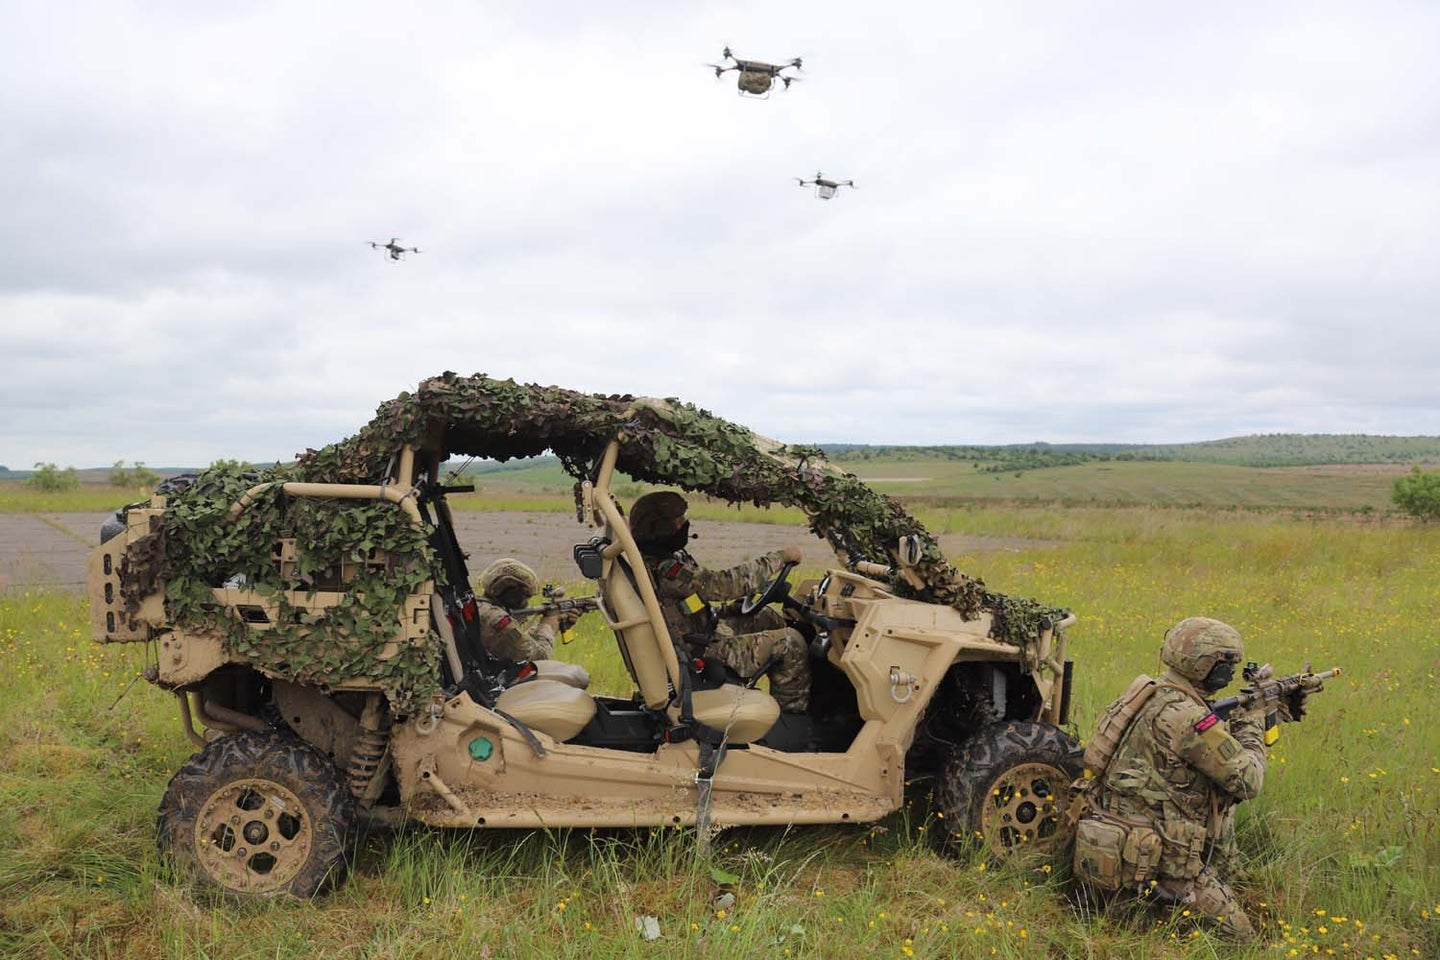 soldiers near a vehicle with drones in the background